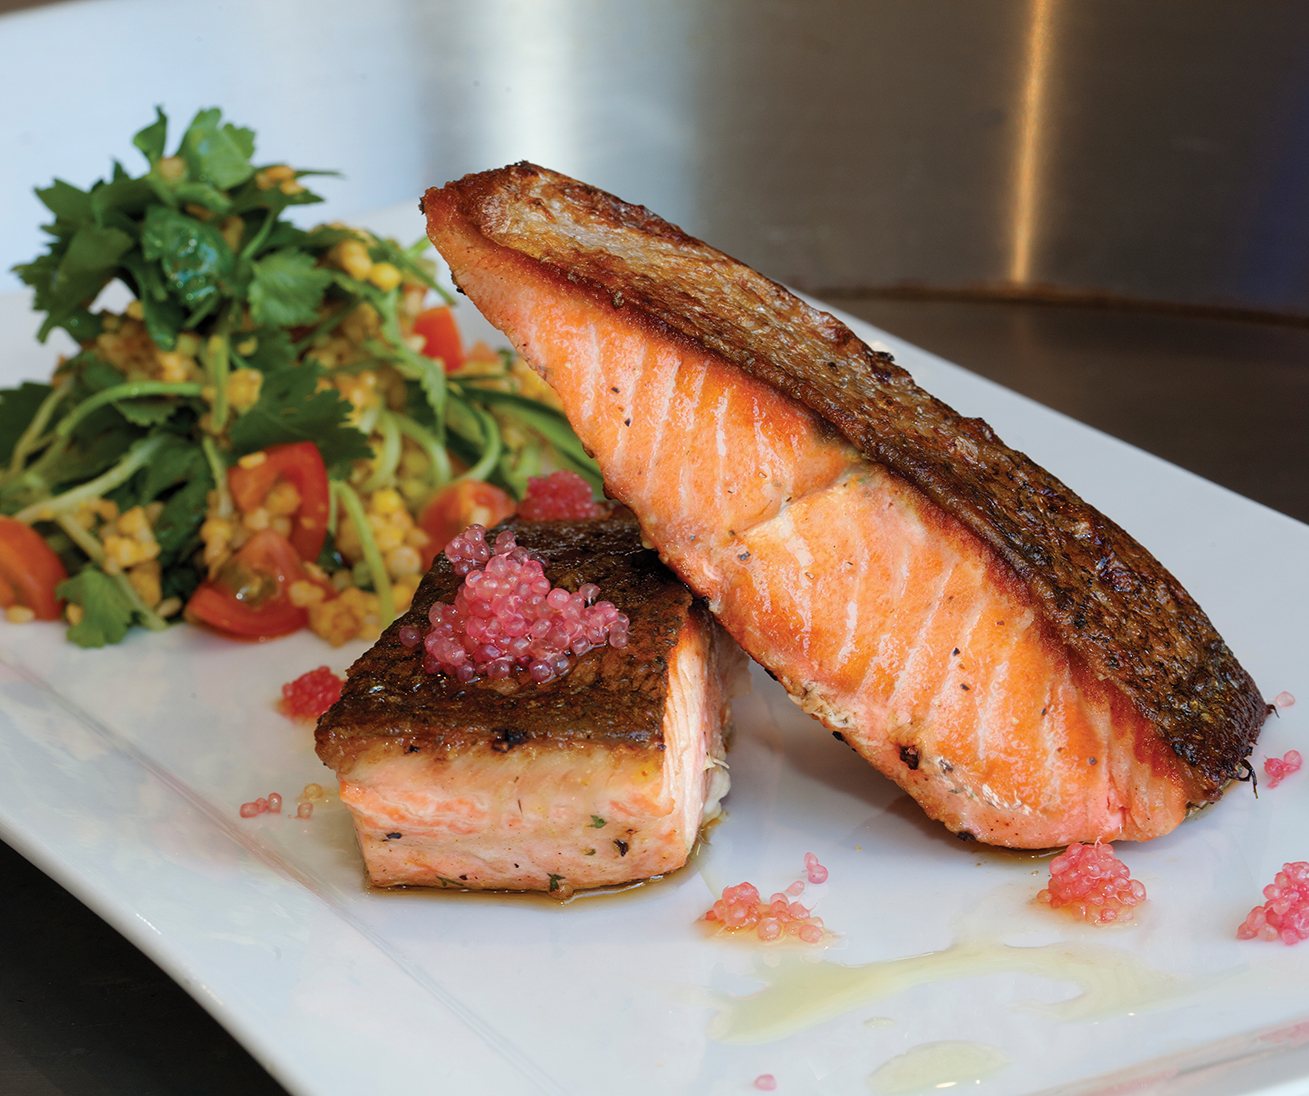 Pan-fried salmon and finger limes